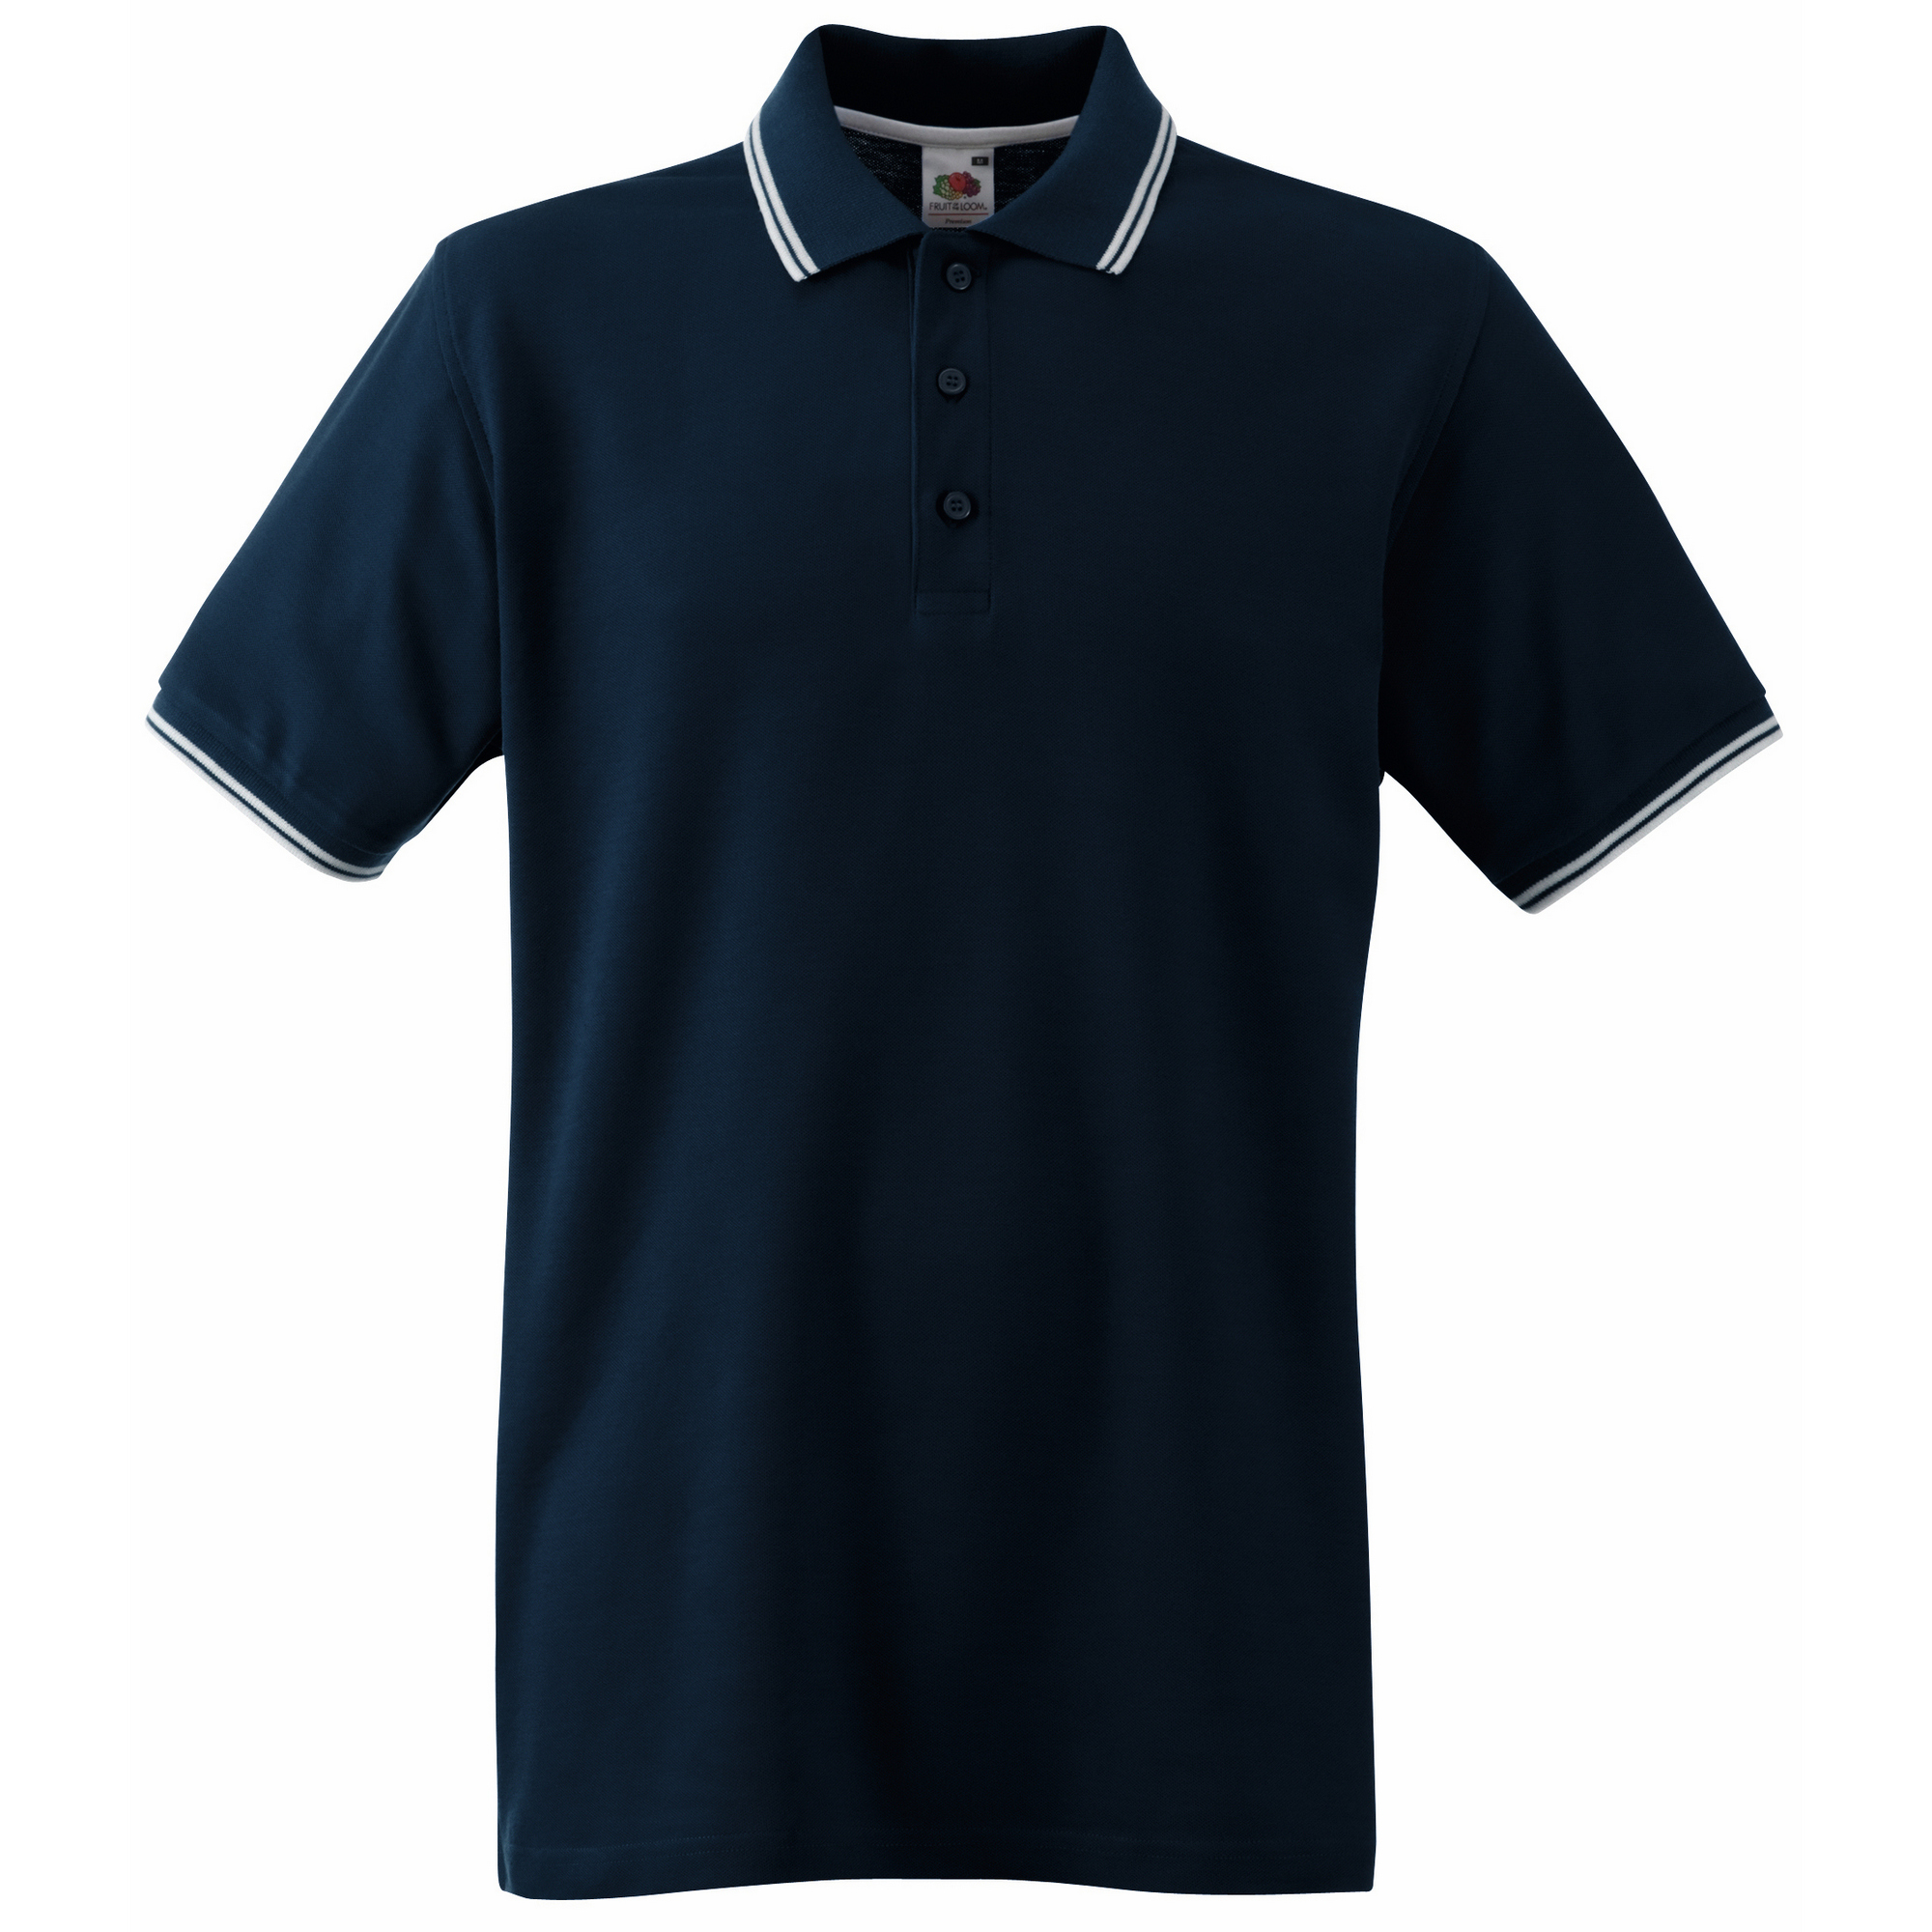 fruit of the loom mens tipped short sleeve polo shirt ebay. Black Bedroom Furniture Sets. Home Design Ideas